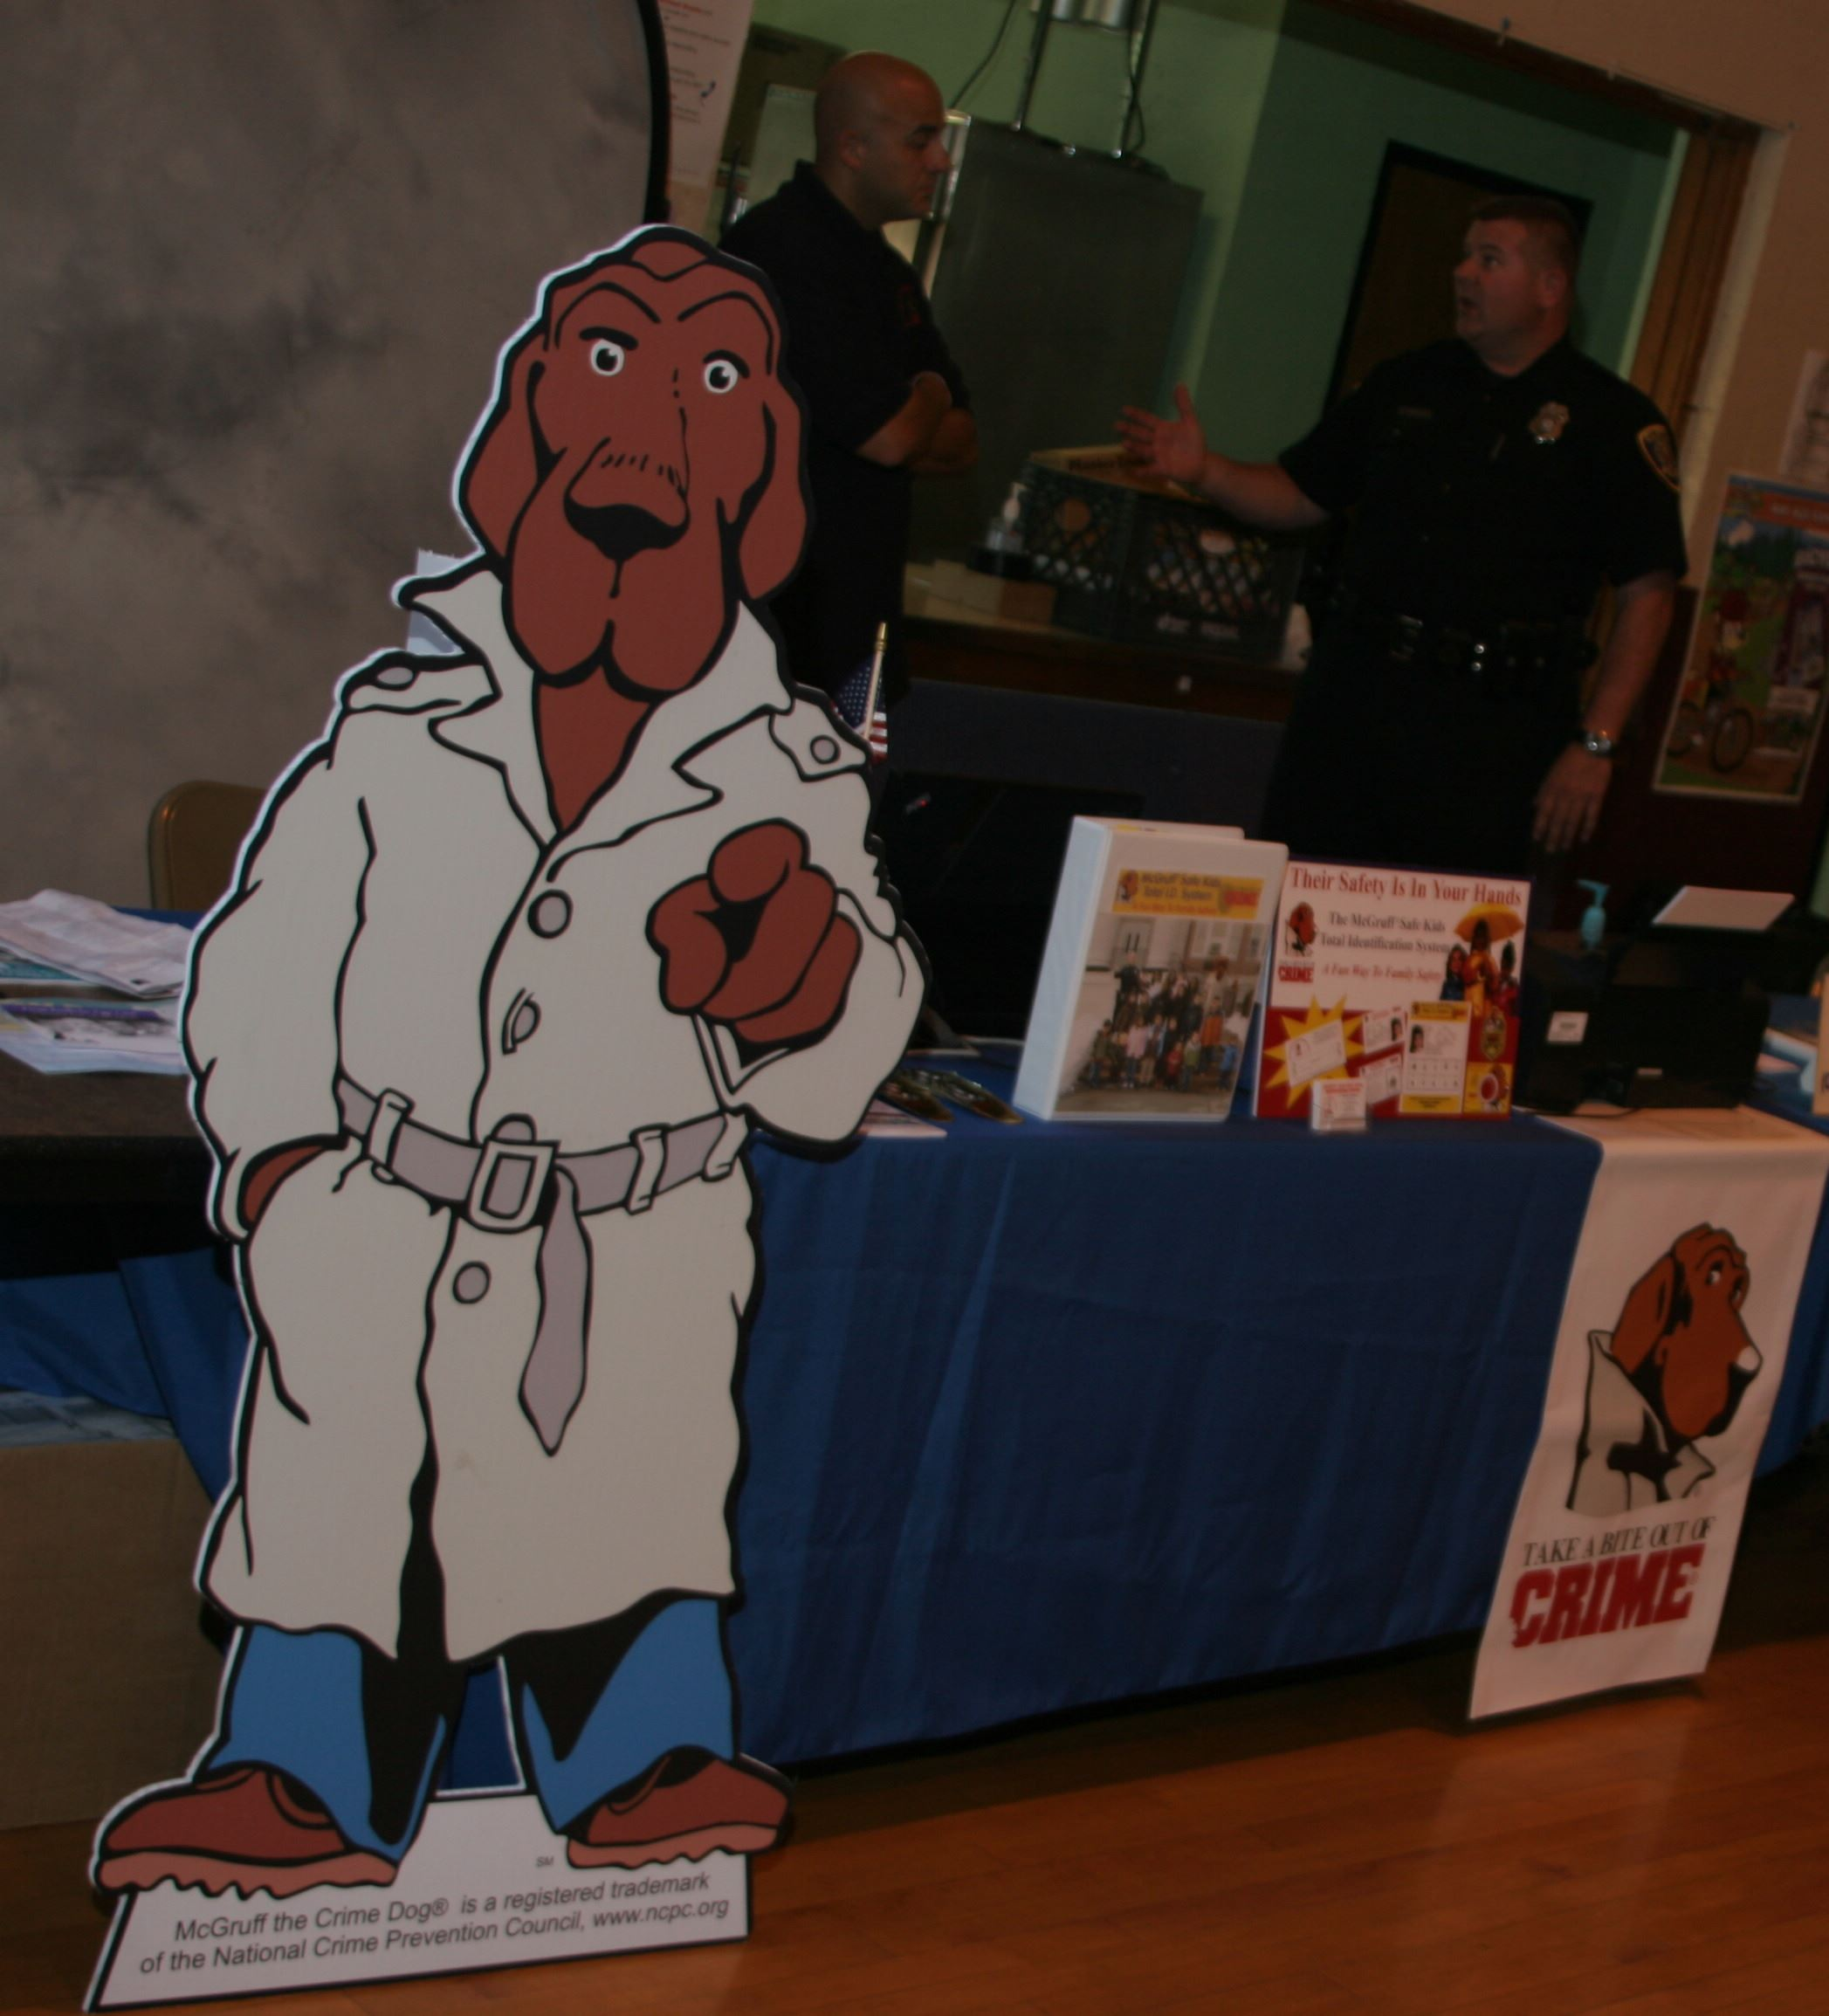 Booth for McGruff the Crime Dog at the Safety Fair